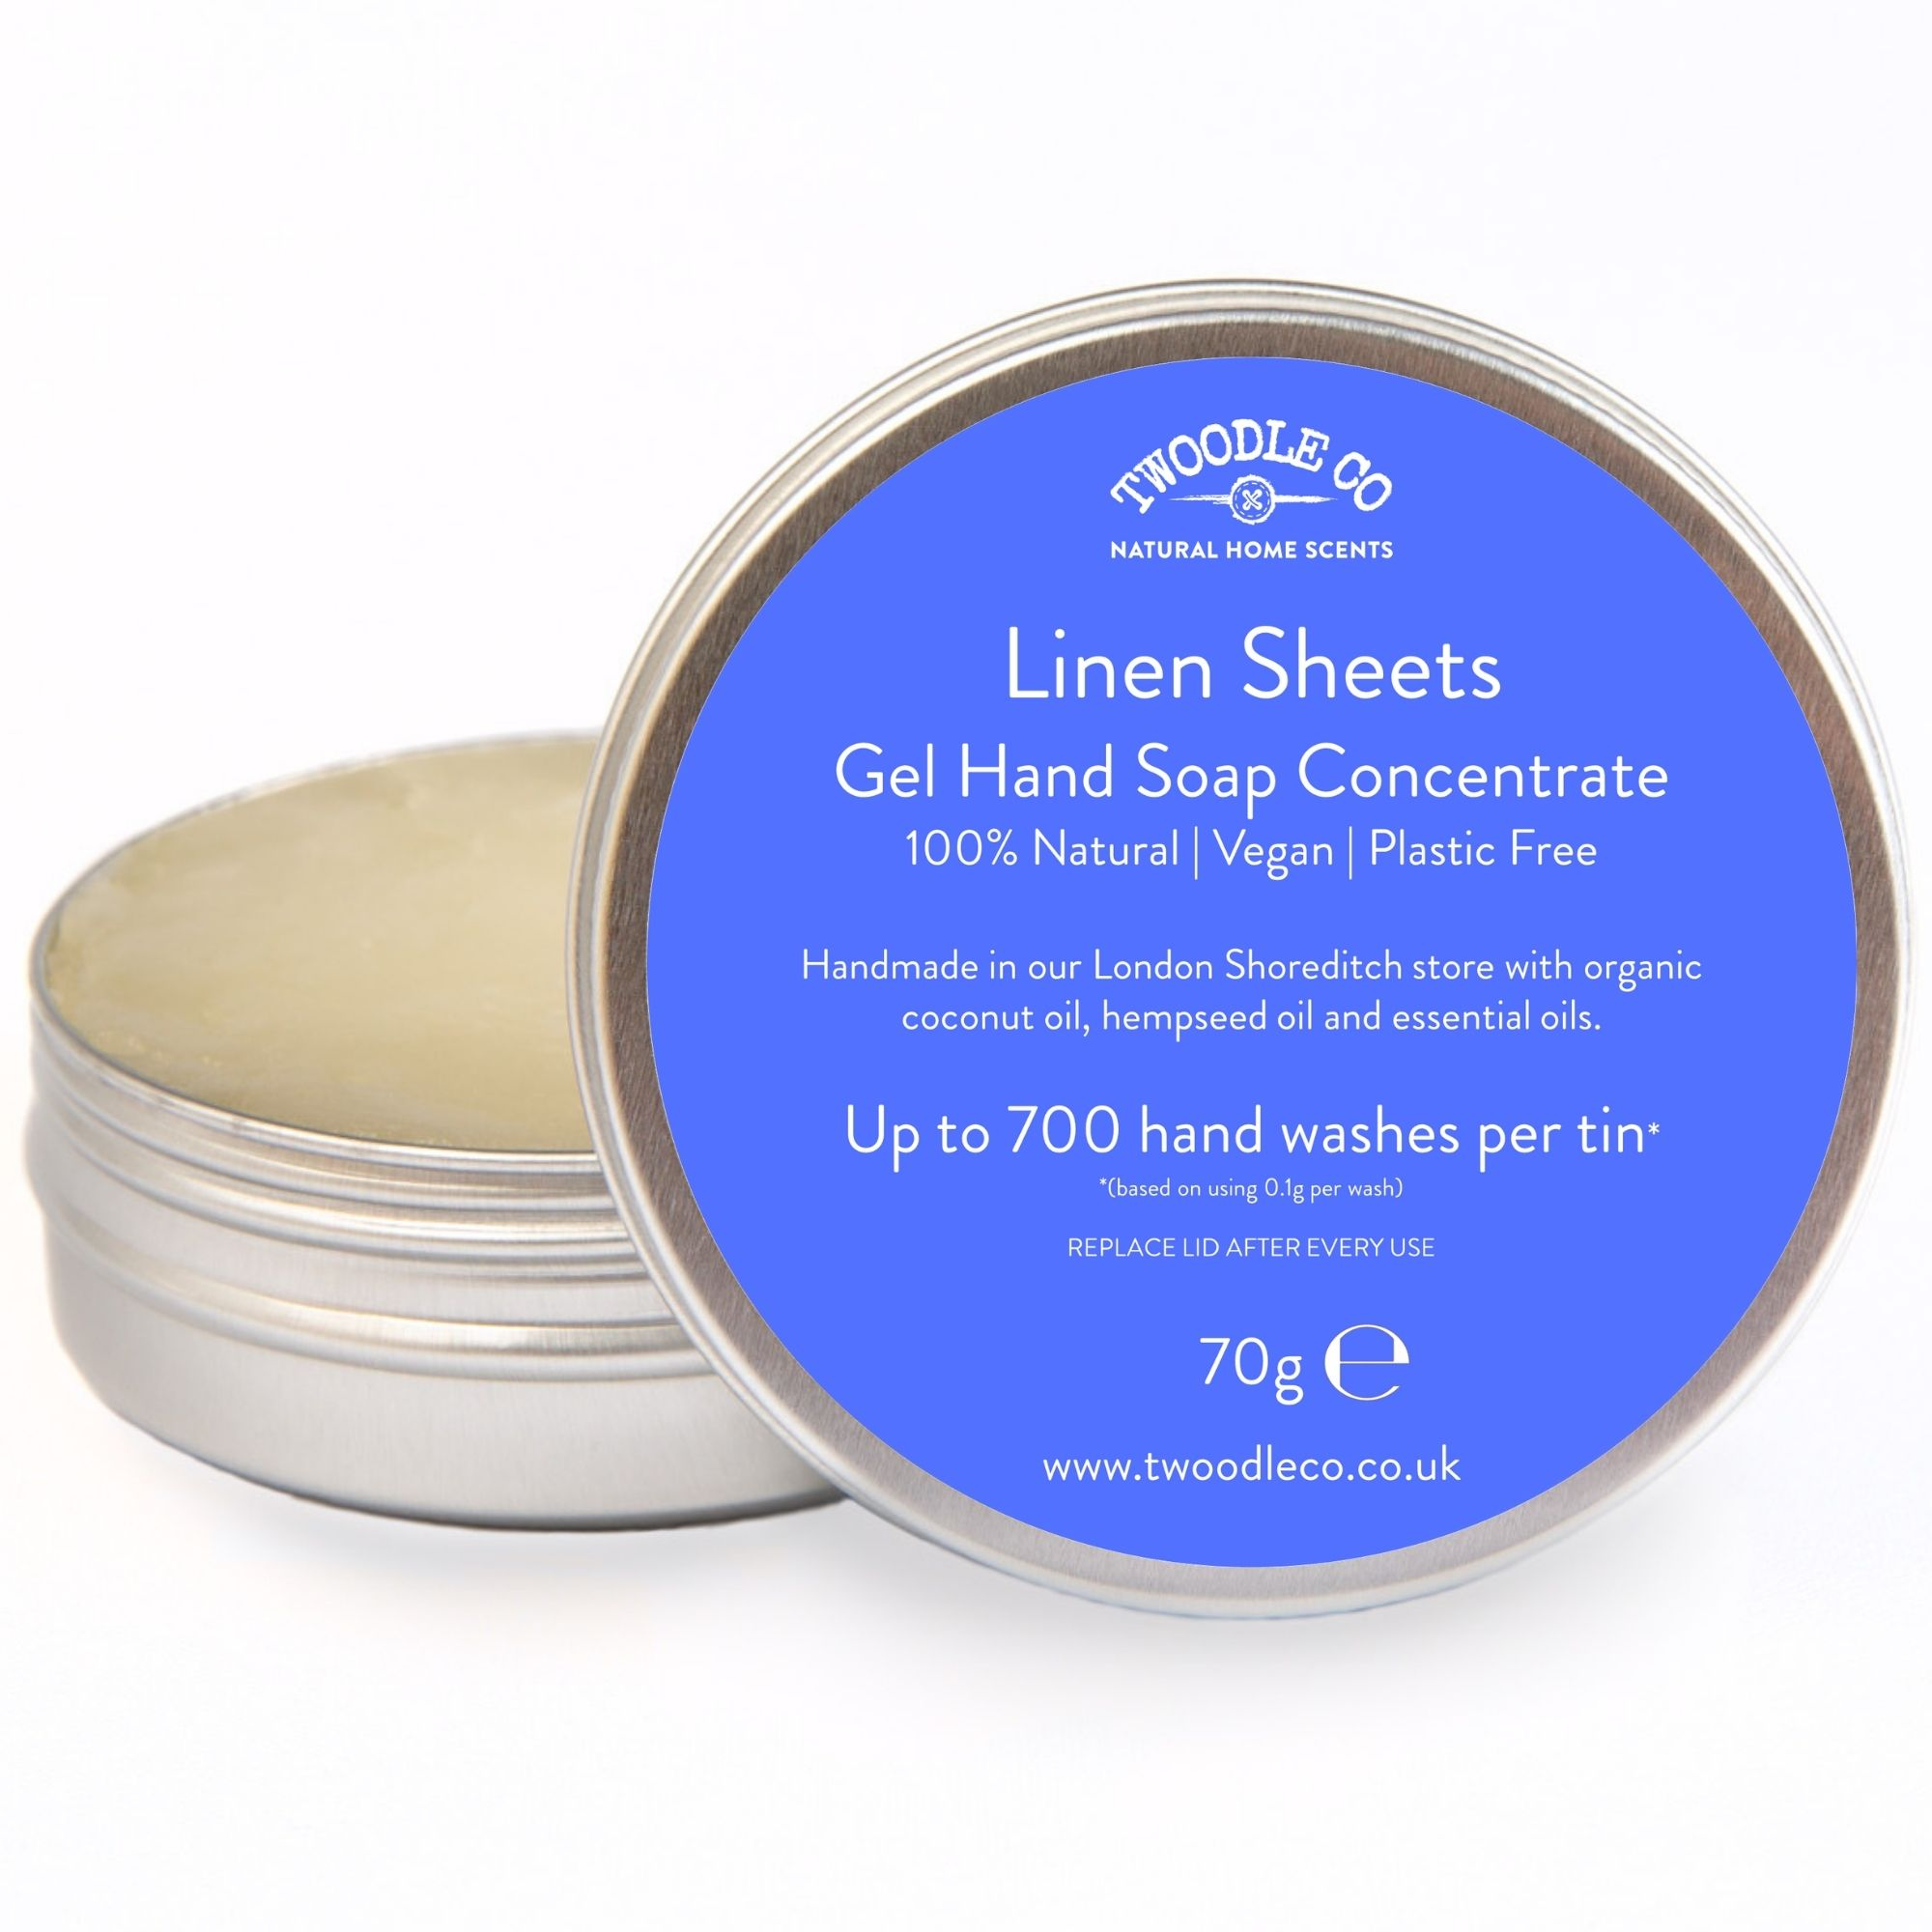 Linen Sheets Gel Hand Soap Concentrate